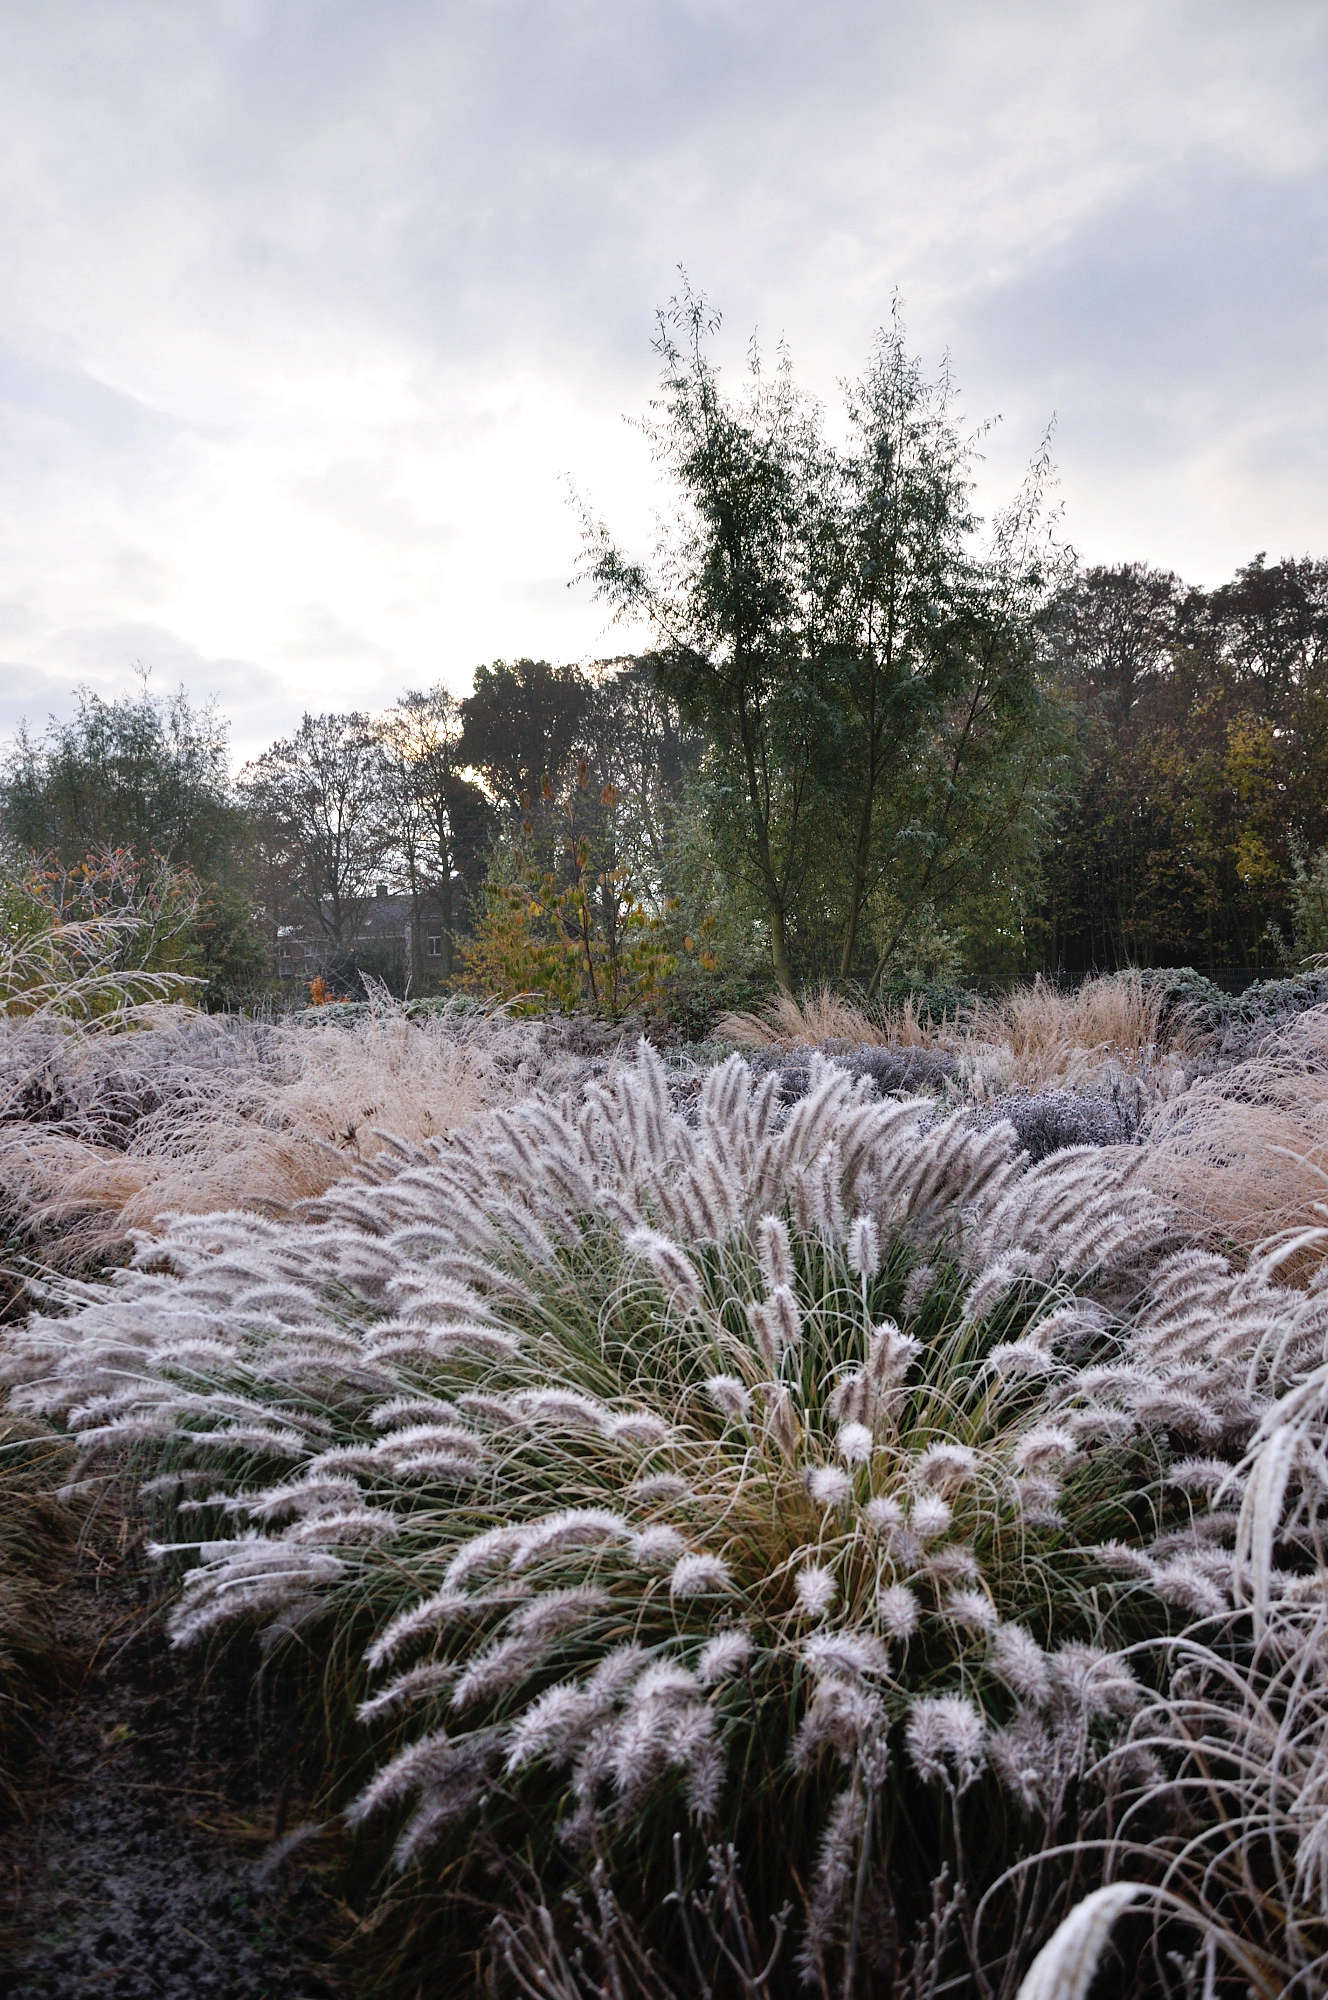 The pompom heads of Pennisetum are even prettier with a dusting of frost.